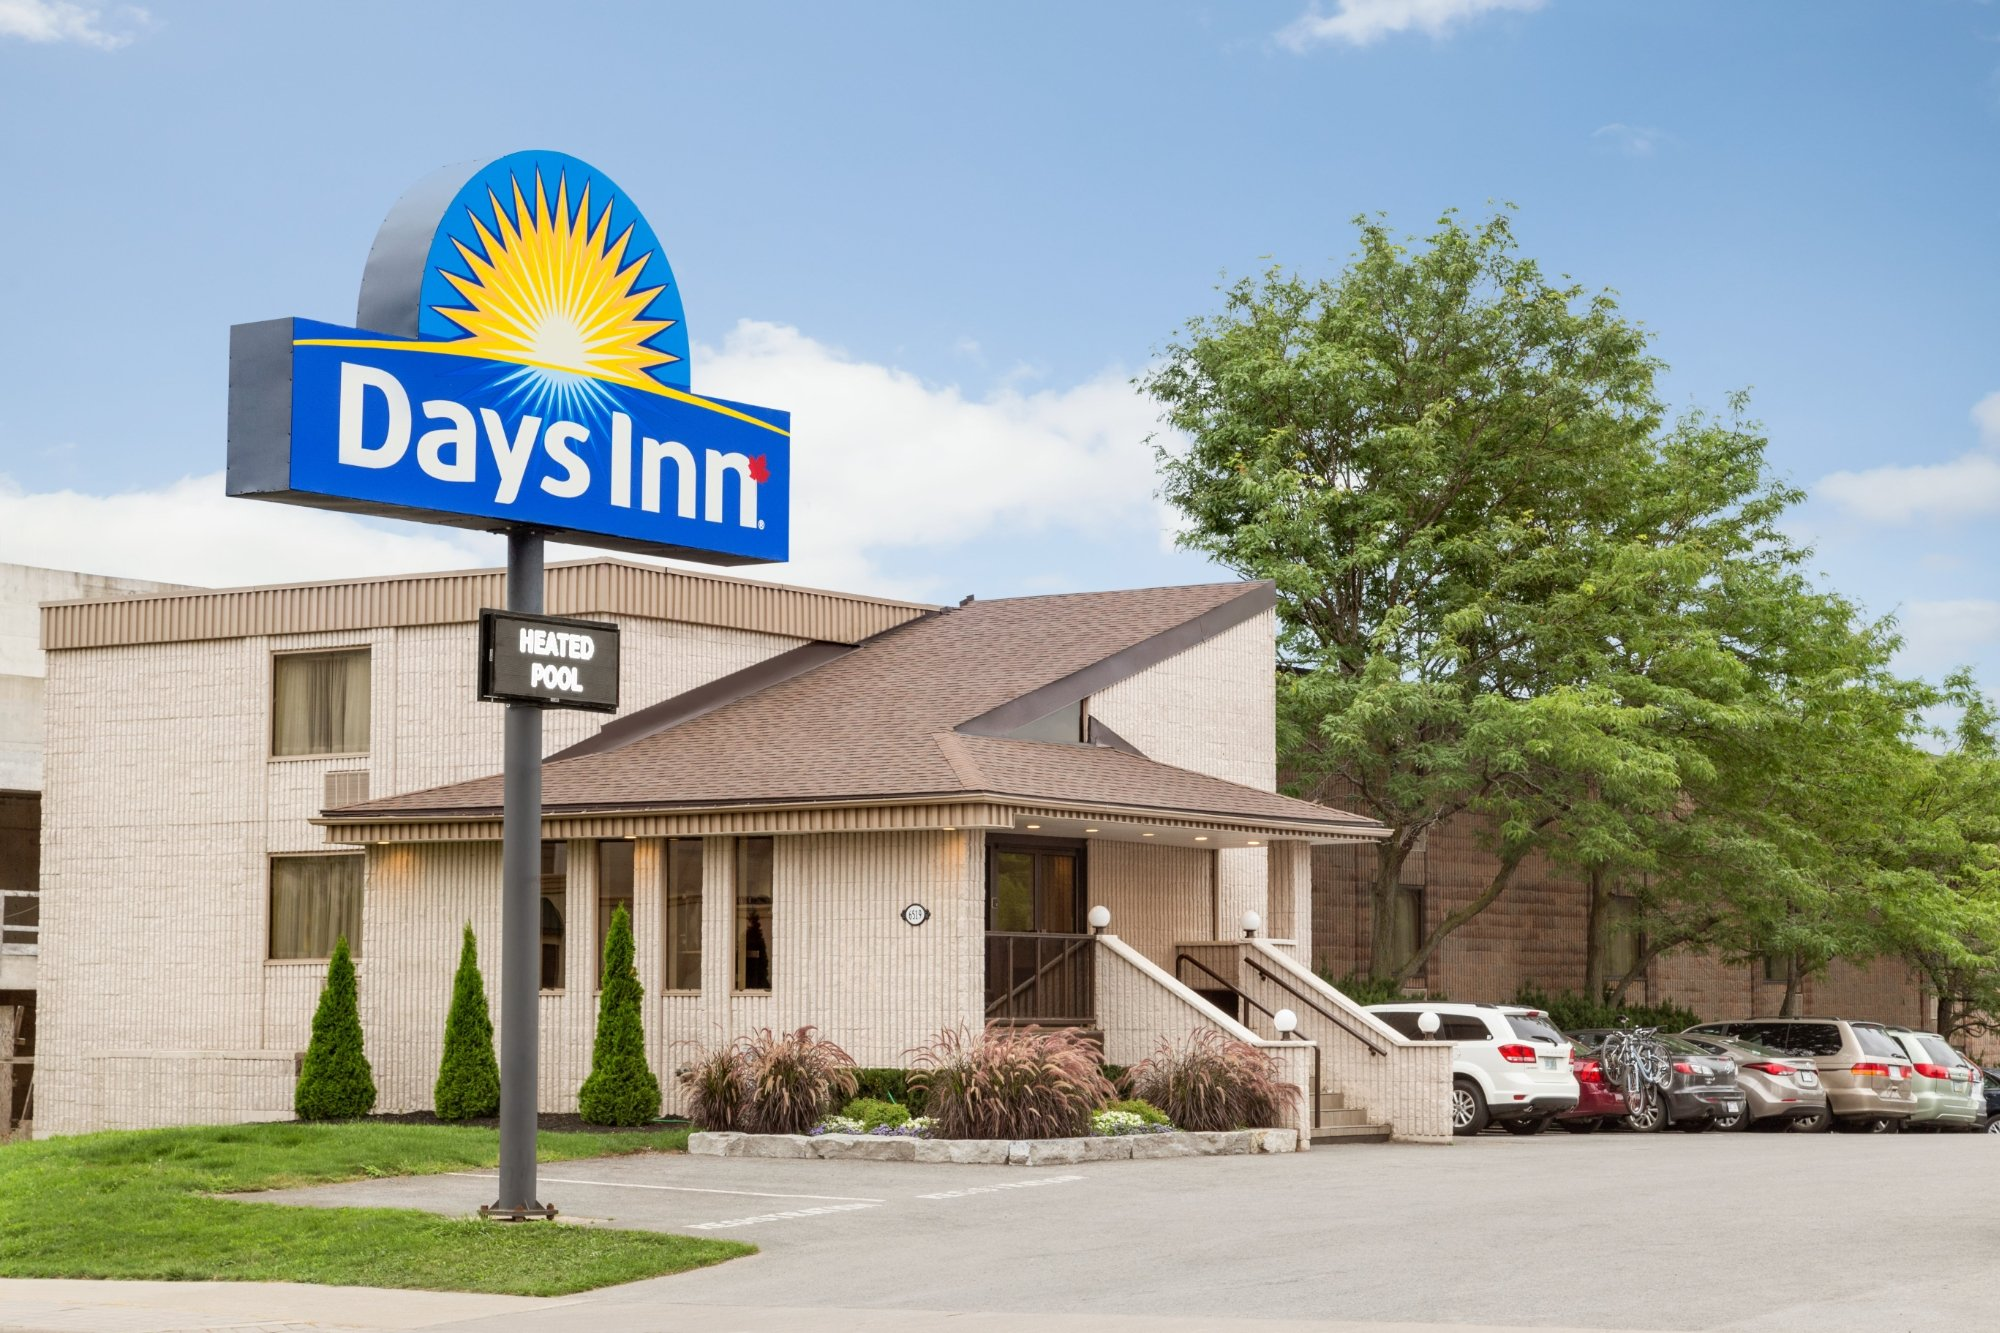 Days Inn - Fallsview